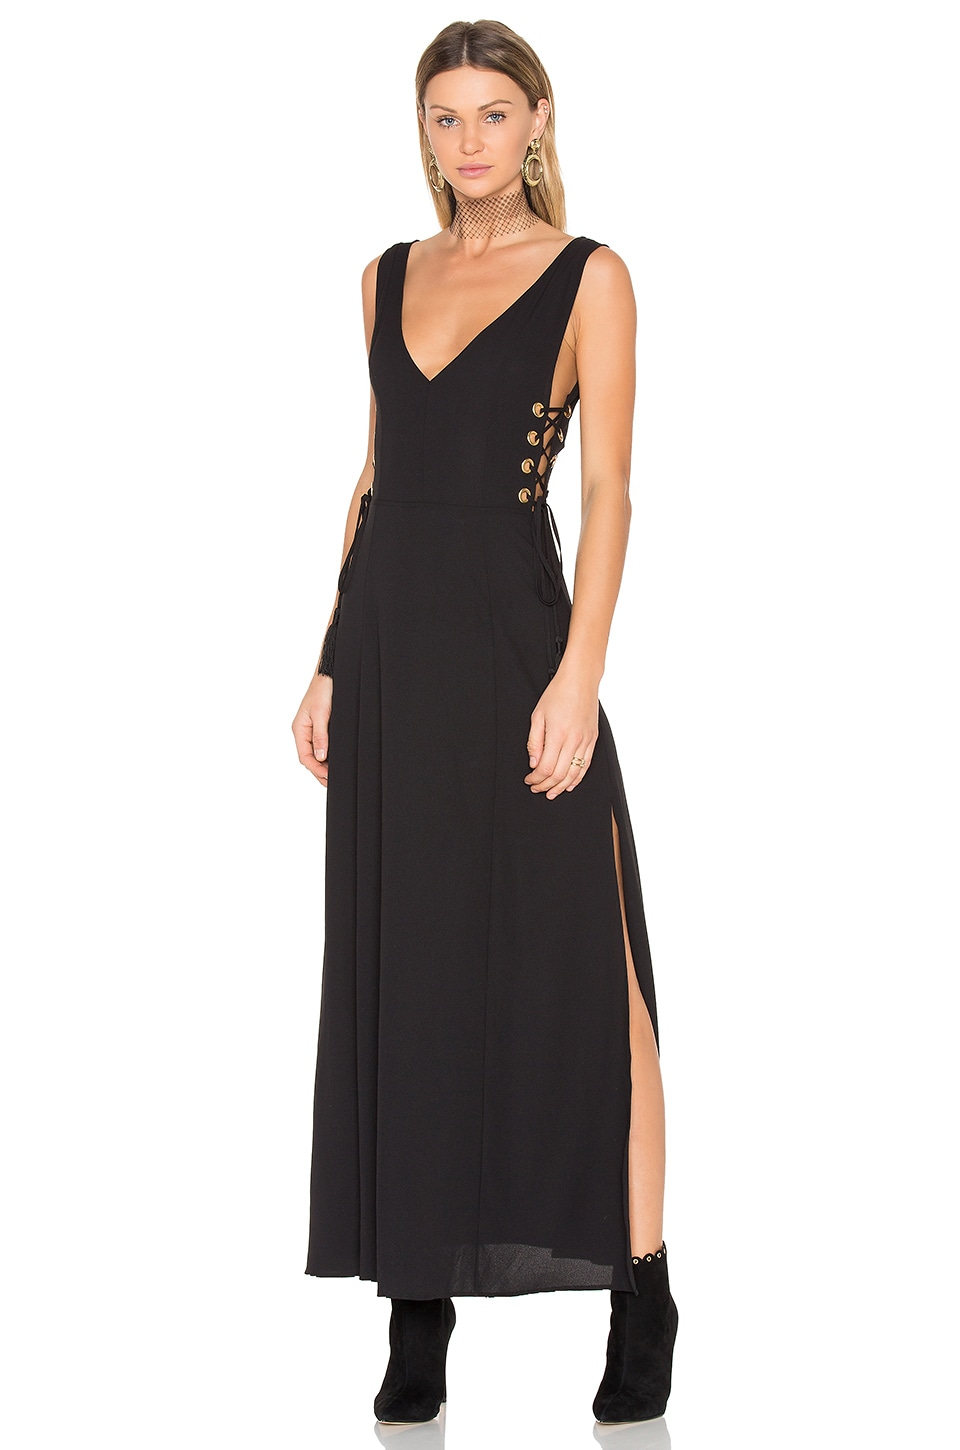 Black Long Dress with Tie Detail